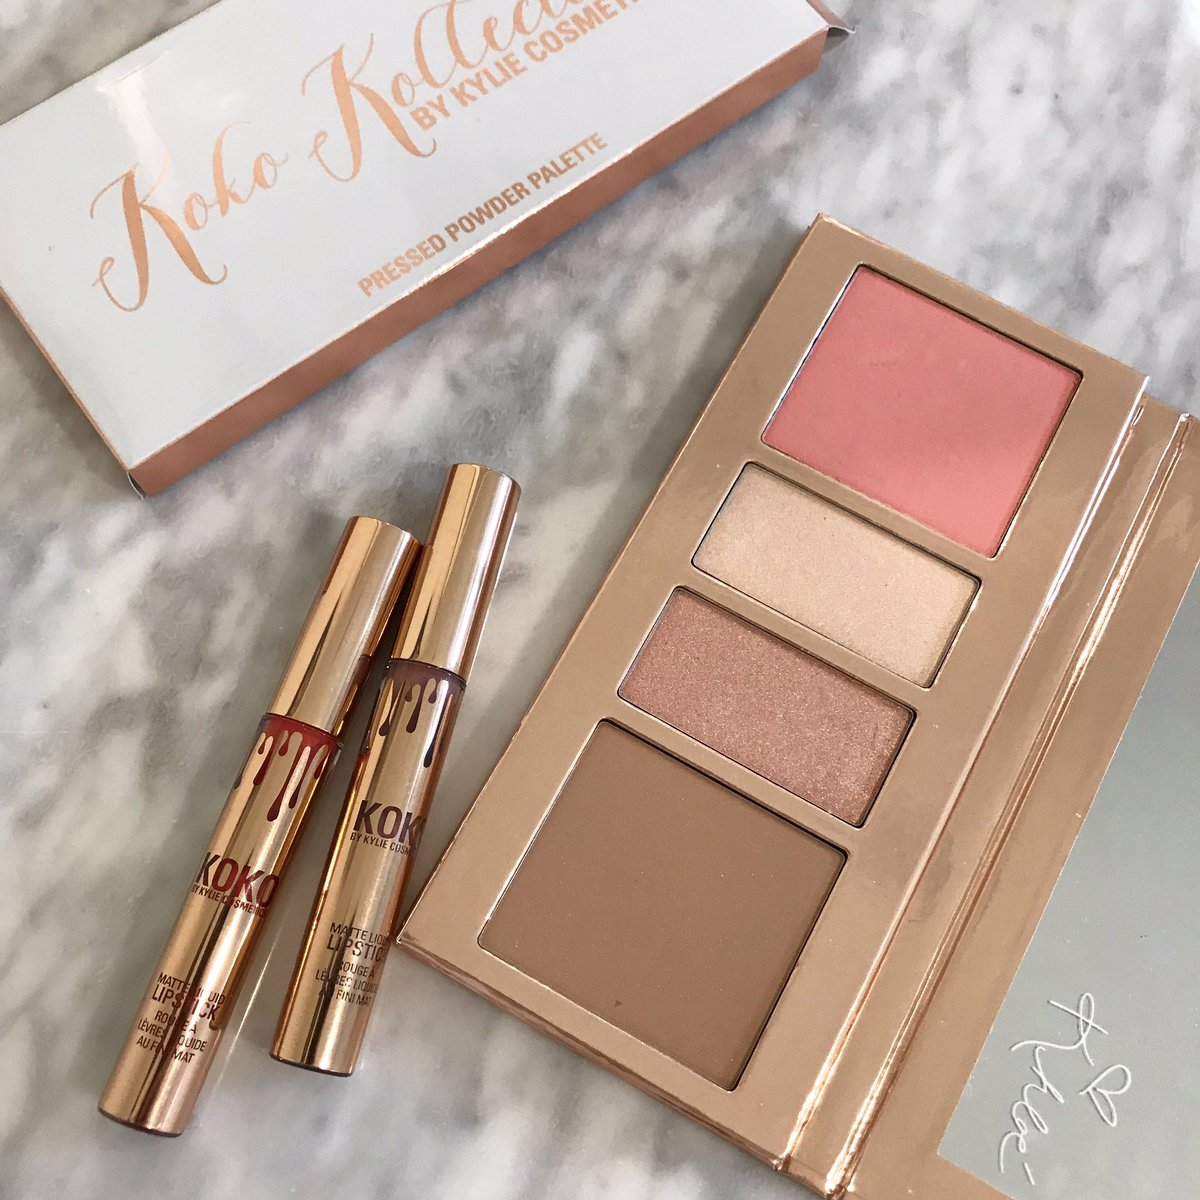 40% off my Koko Kollection face palette and select lip shades in the https://t.co/8Tz1bLoLTe #MemorialDay sale!! ???????? https://t.co/xsUGyjnUZu